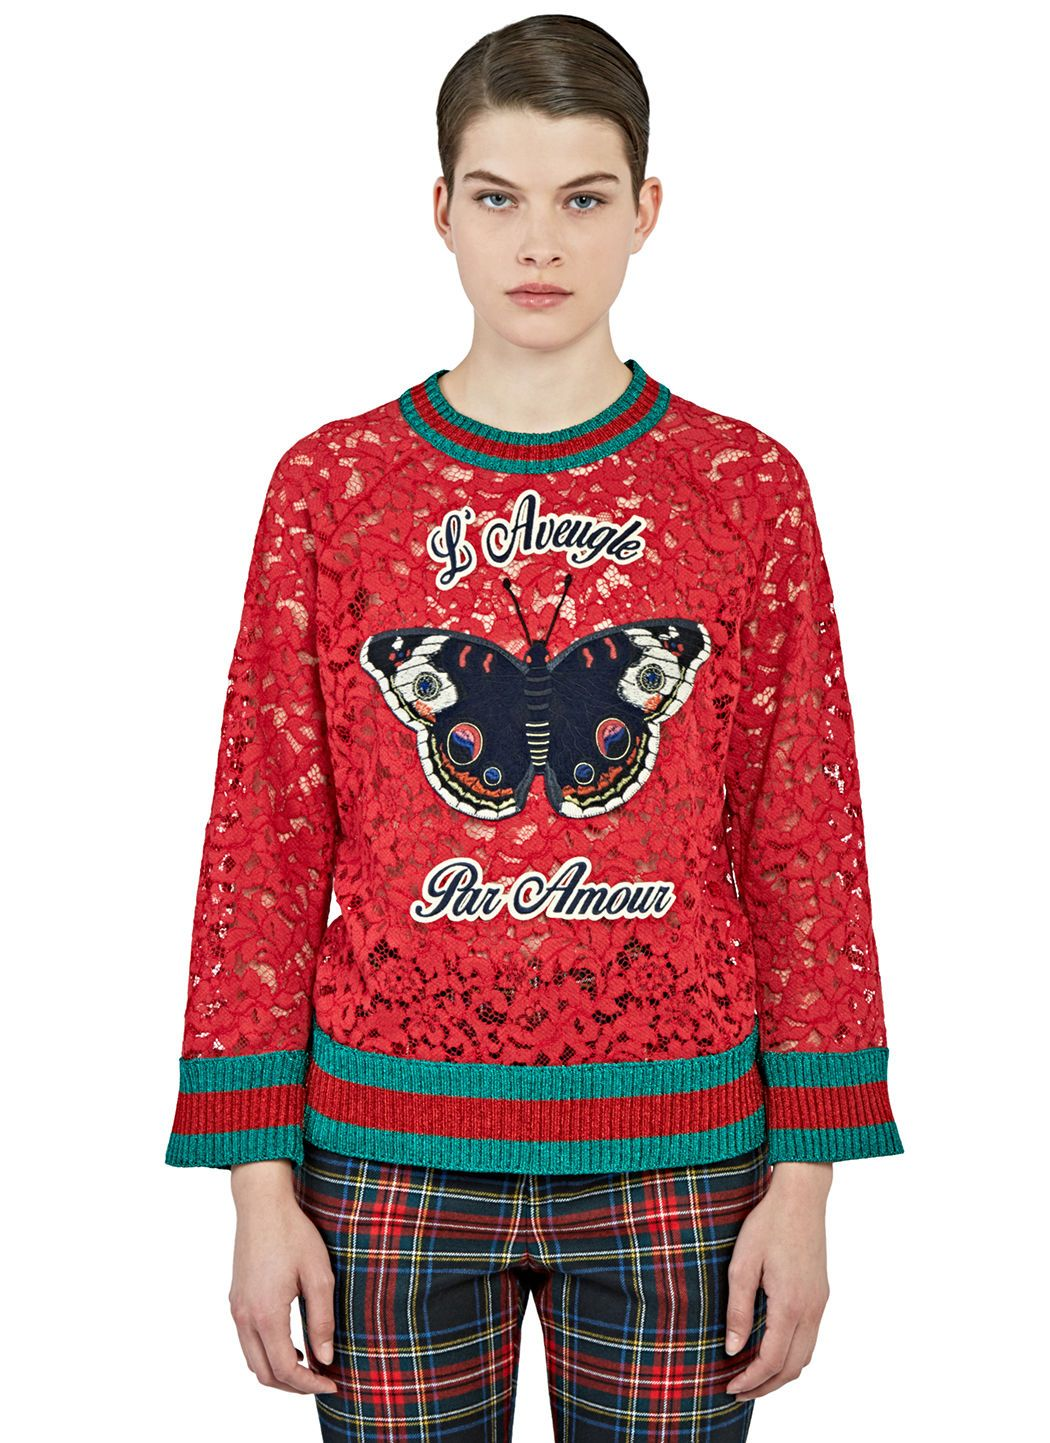 GUCCI Women'S Butterfly Patch Floral Lace Sweater In Red. #gucci ...